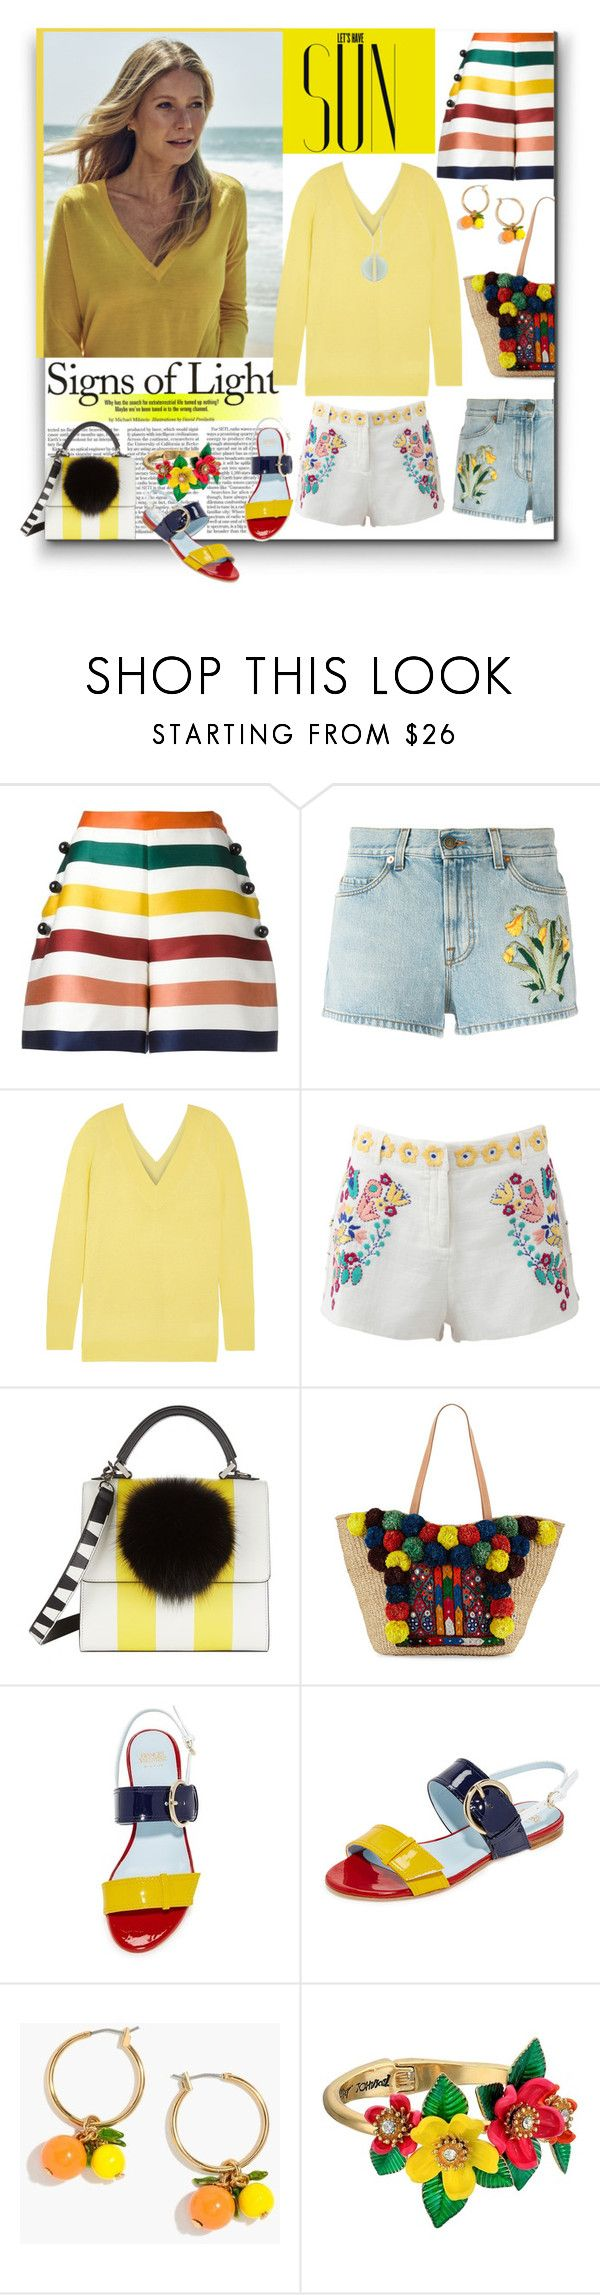 """Let´s Have Sun"" by sylandrya ❤ liked on Polyvore featuring Carolina Herrera, Gucci, Equipment, Antik Batik, Les Petits Joueurs, Flora Bella, Frances Valentine, J.Crew, Betsey Johnson and Swarovski"